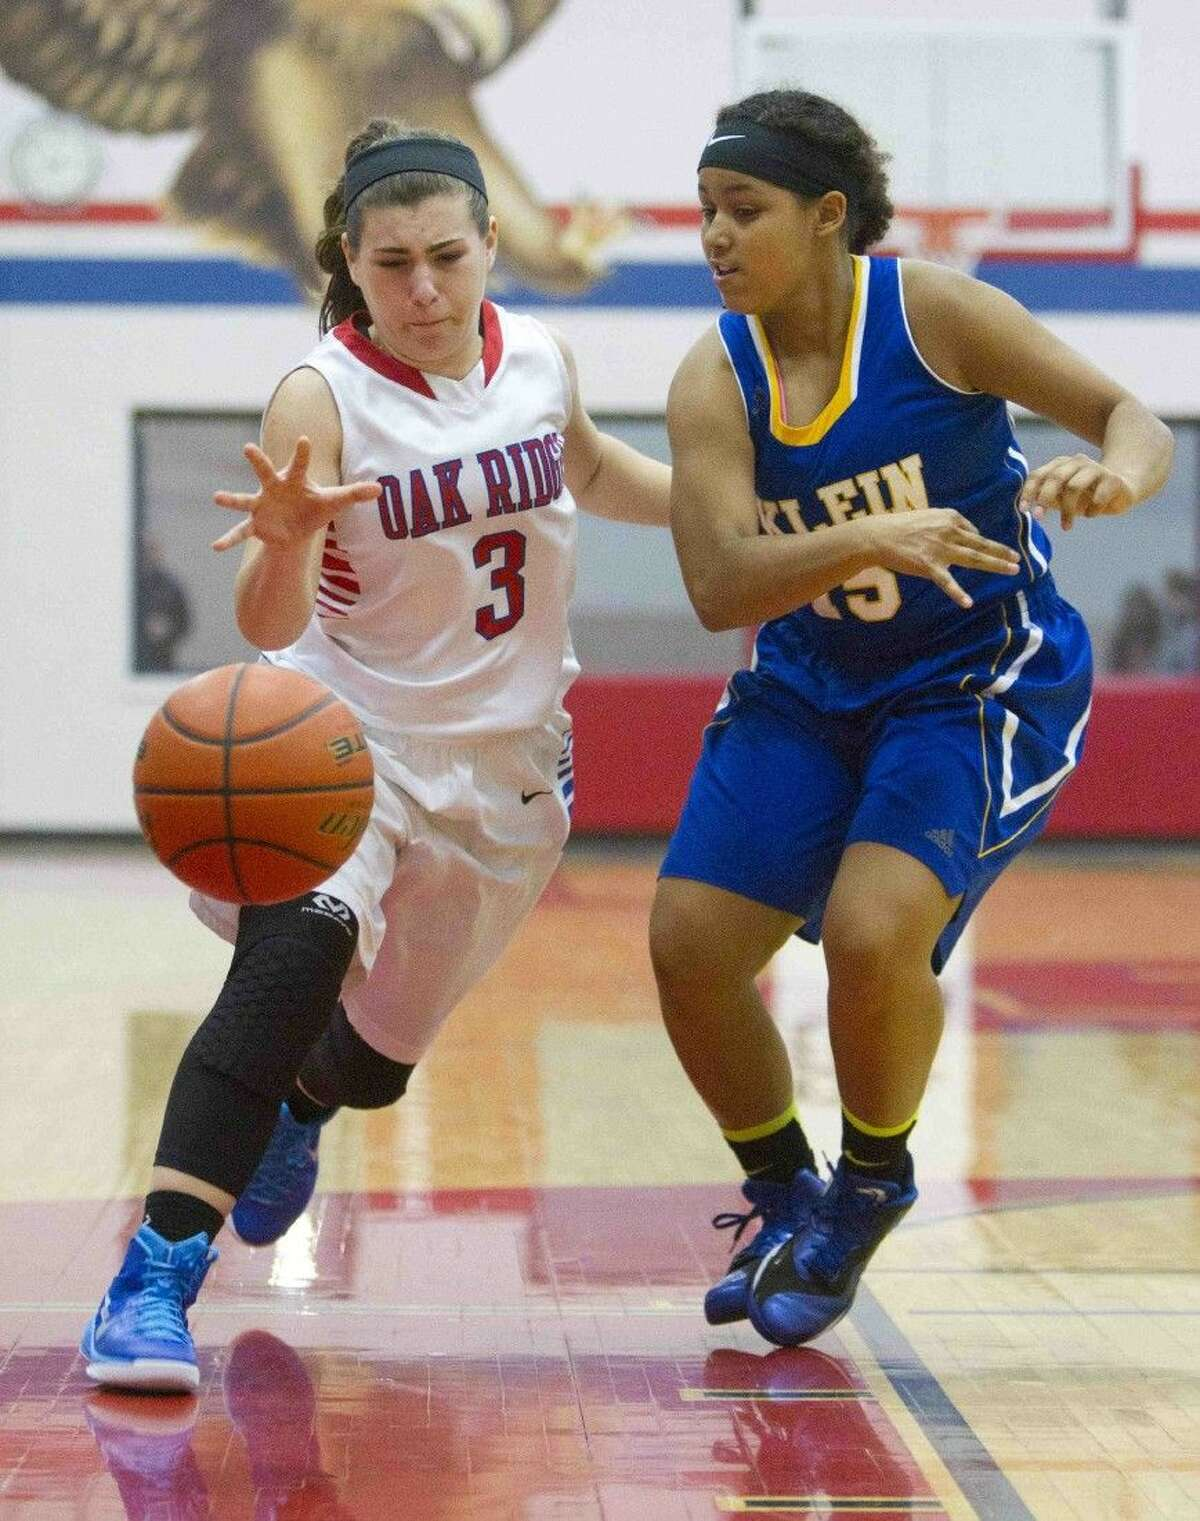 Oak Ridge's Gillian Maleski tries to regain control of a loose ball as Klein'sTatiana Samuel defends during a non-district game on Tuesday night.